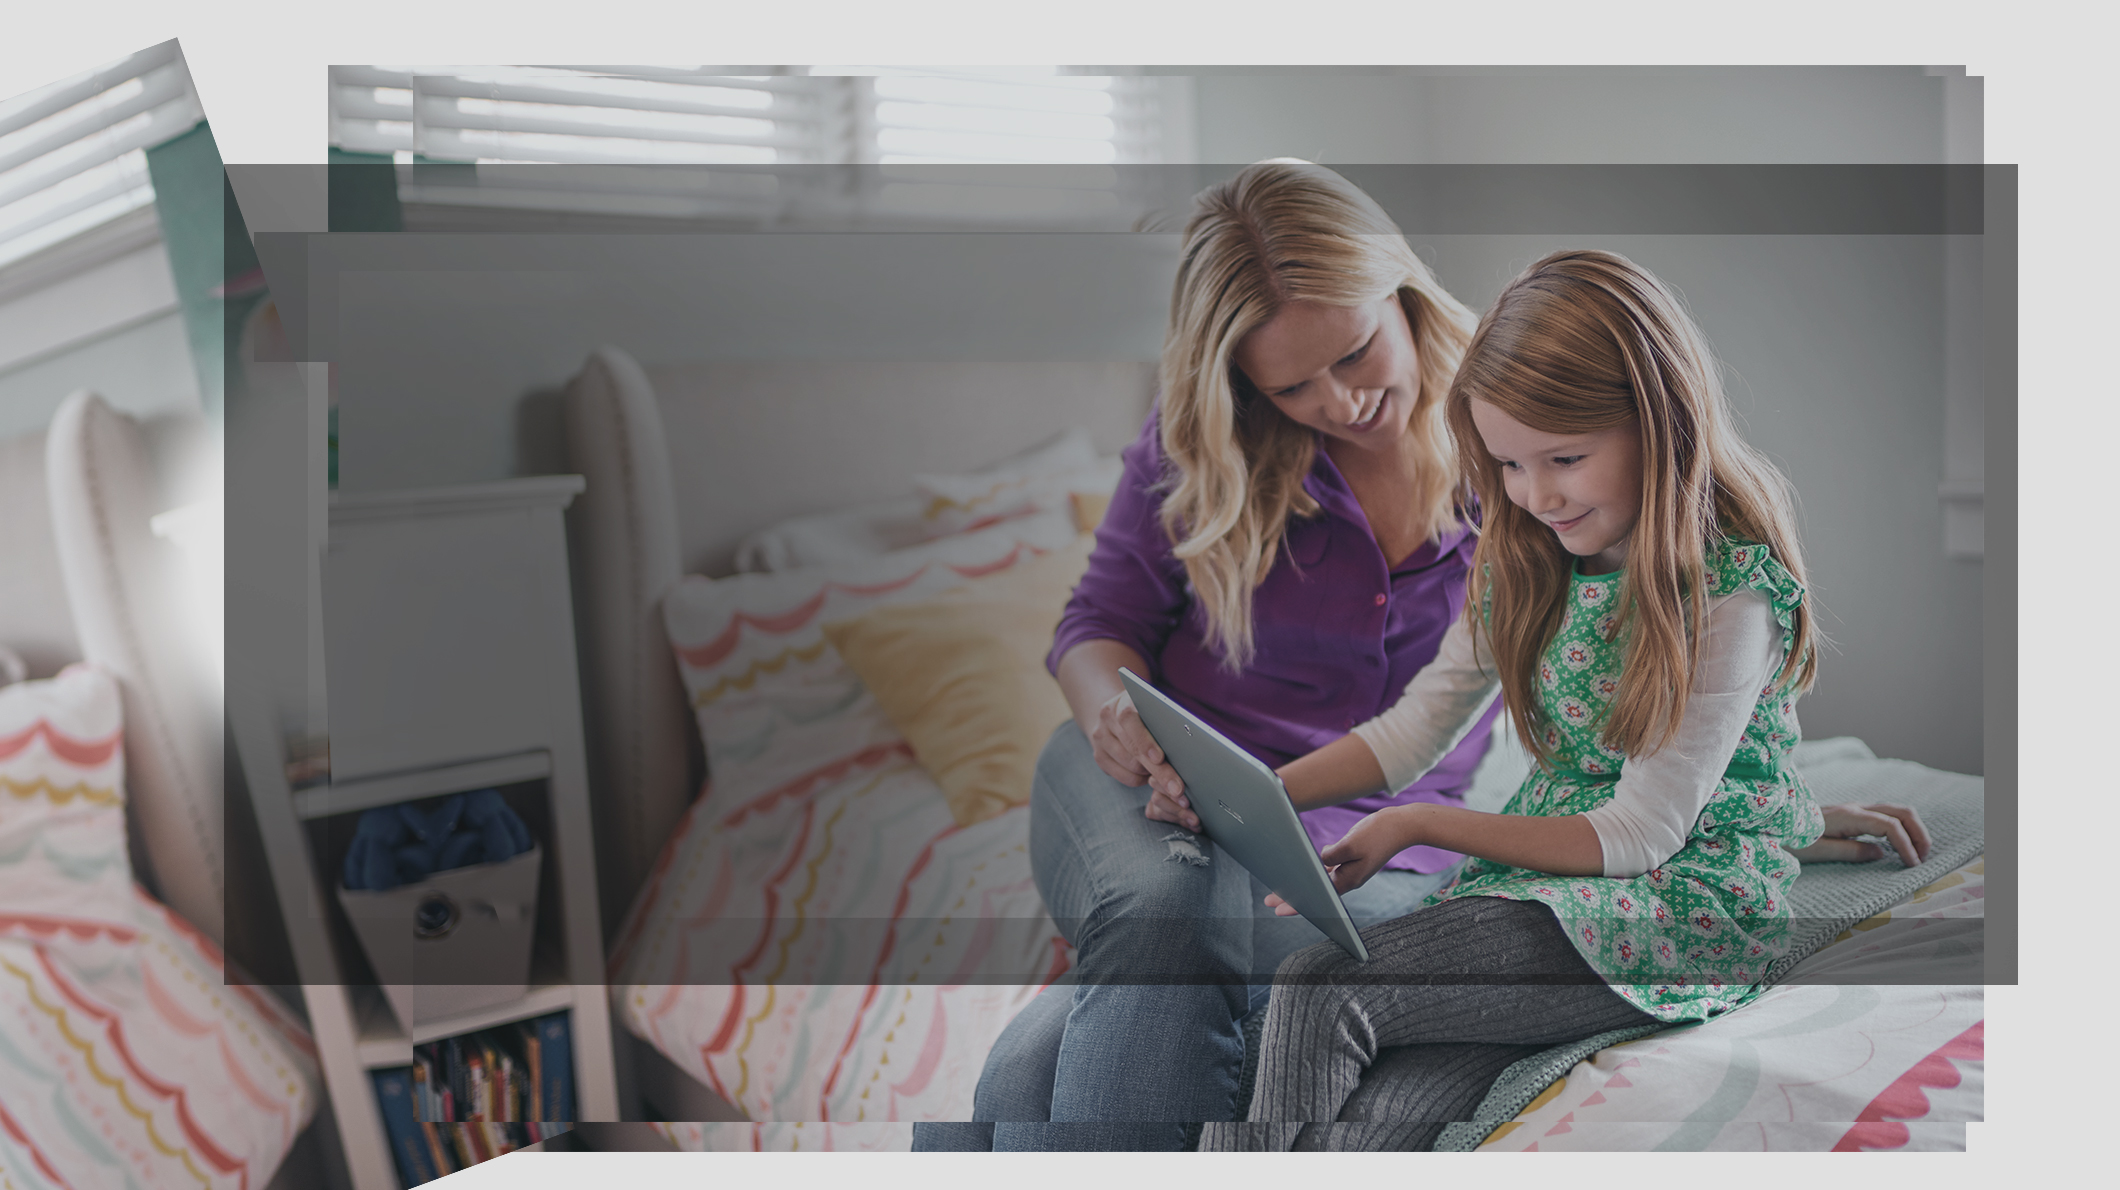 A mother and daughter look at a PC screen